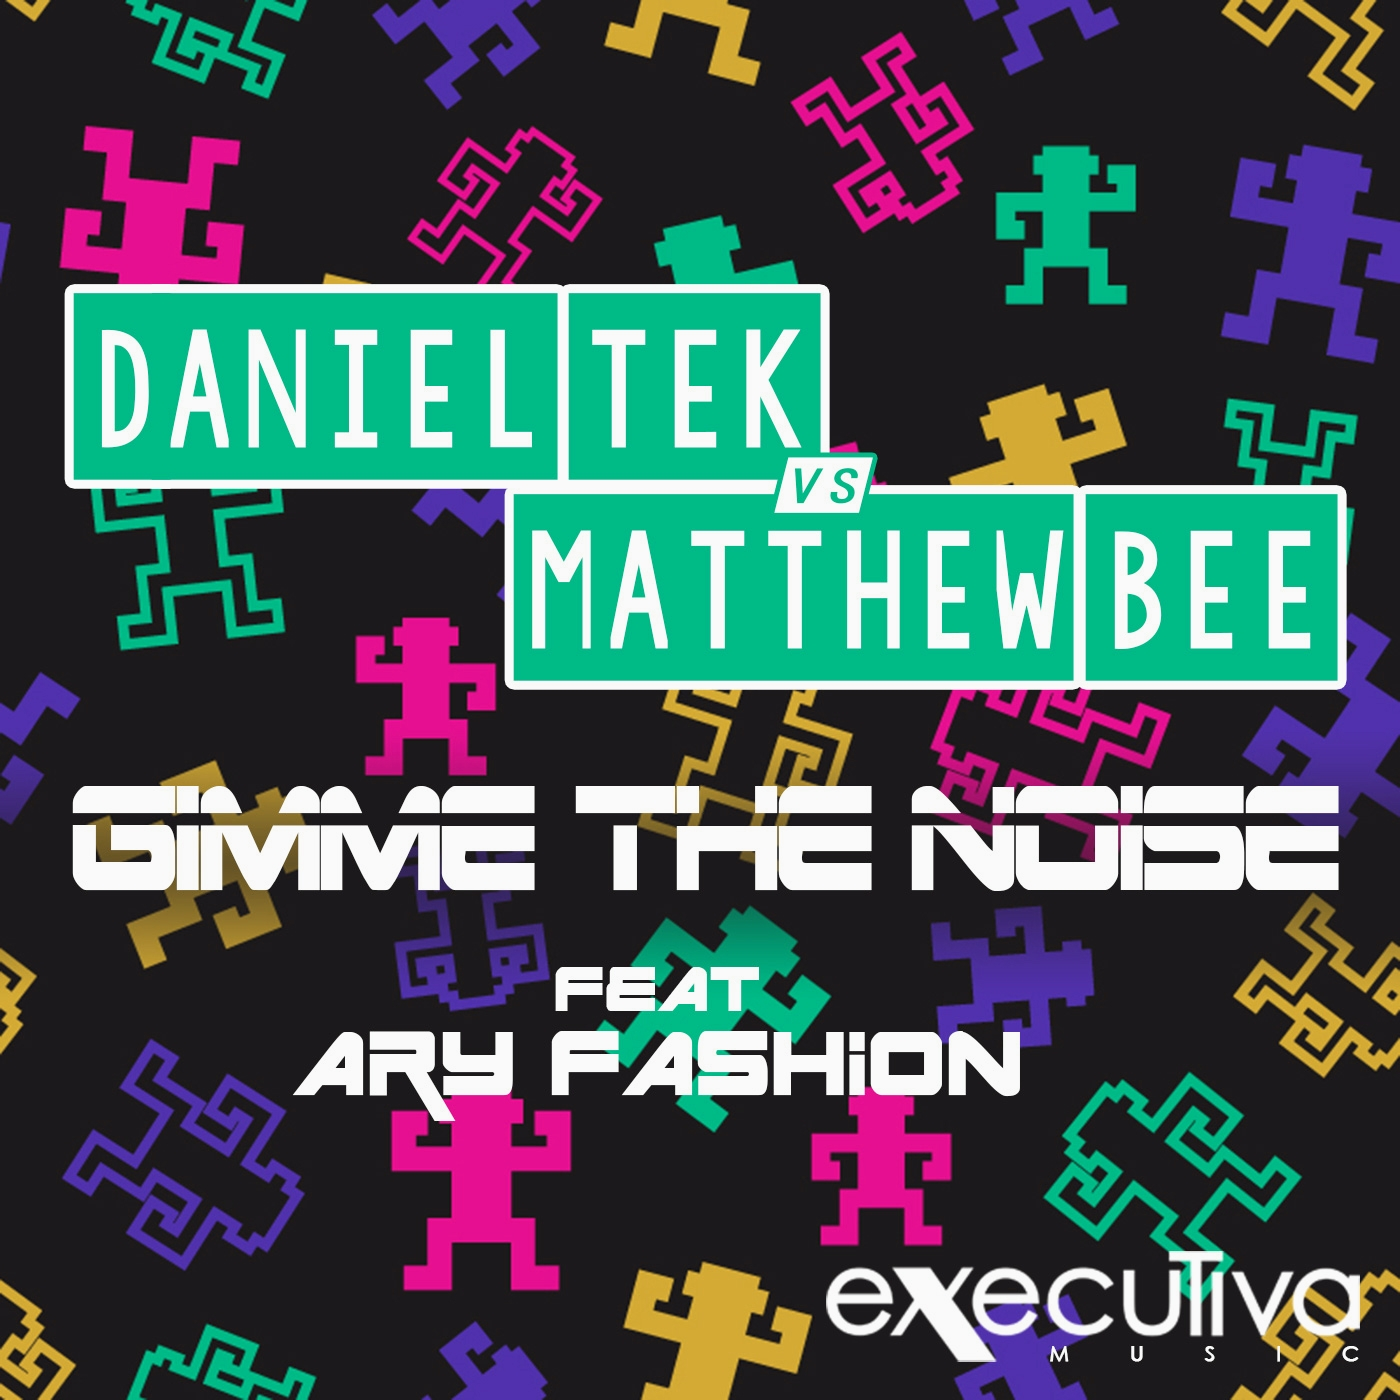 Daniel Tek & Matthew Bee - Gimme The Noise Feat. AryFashion (Max V Remix)